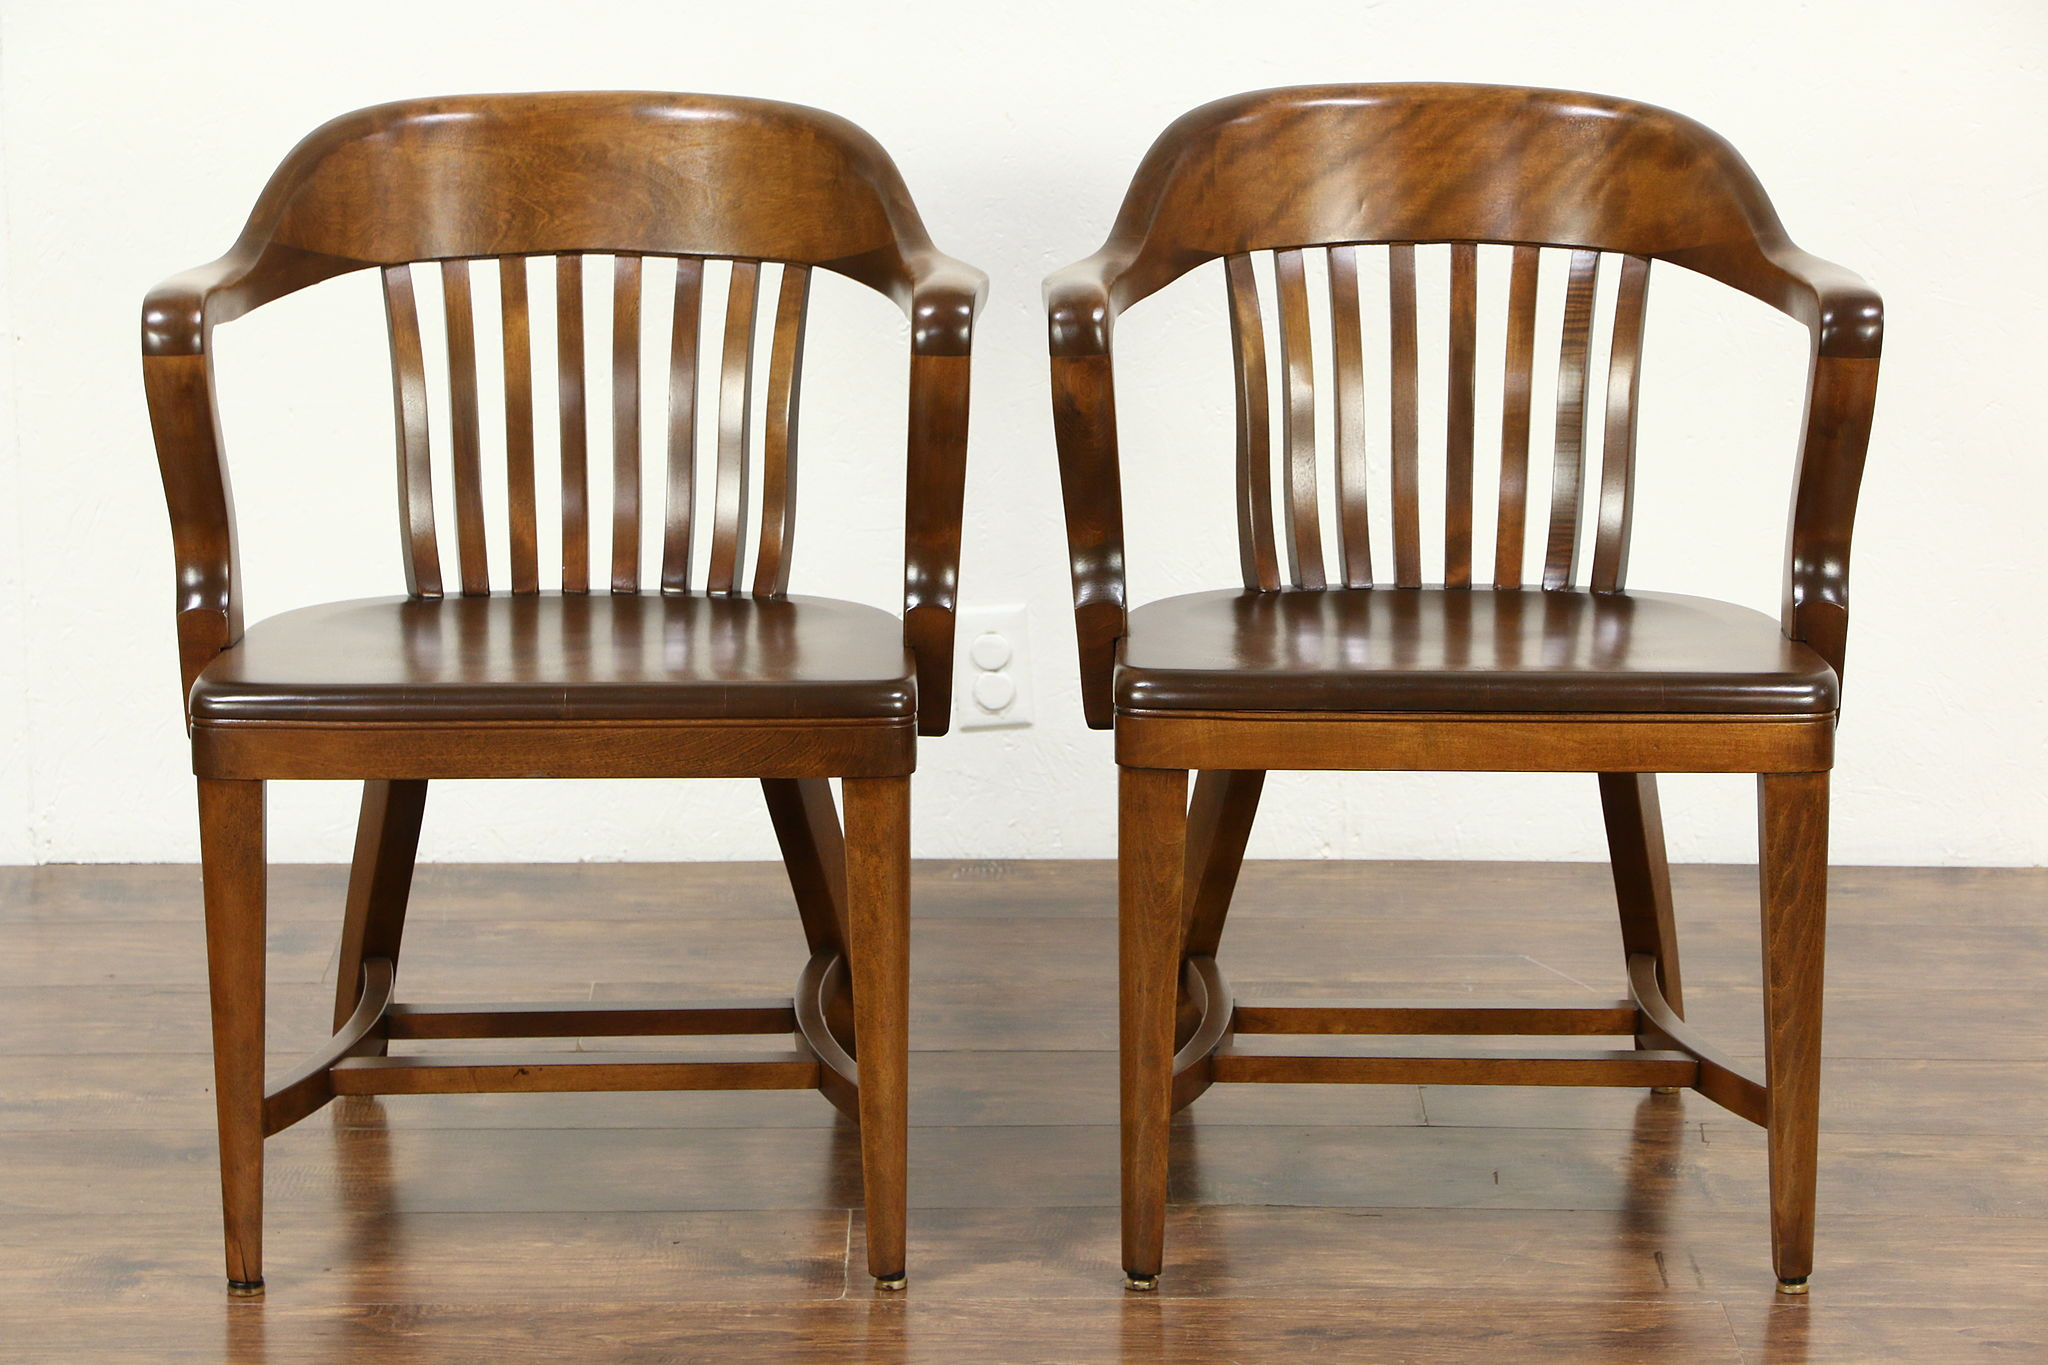 Curved Back Chair Pair 1920 Antique Curved Back Birch Banker Office Or Library Chairs